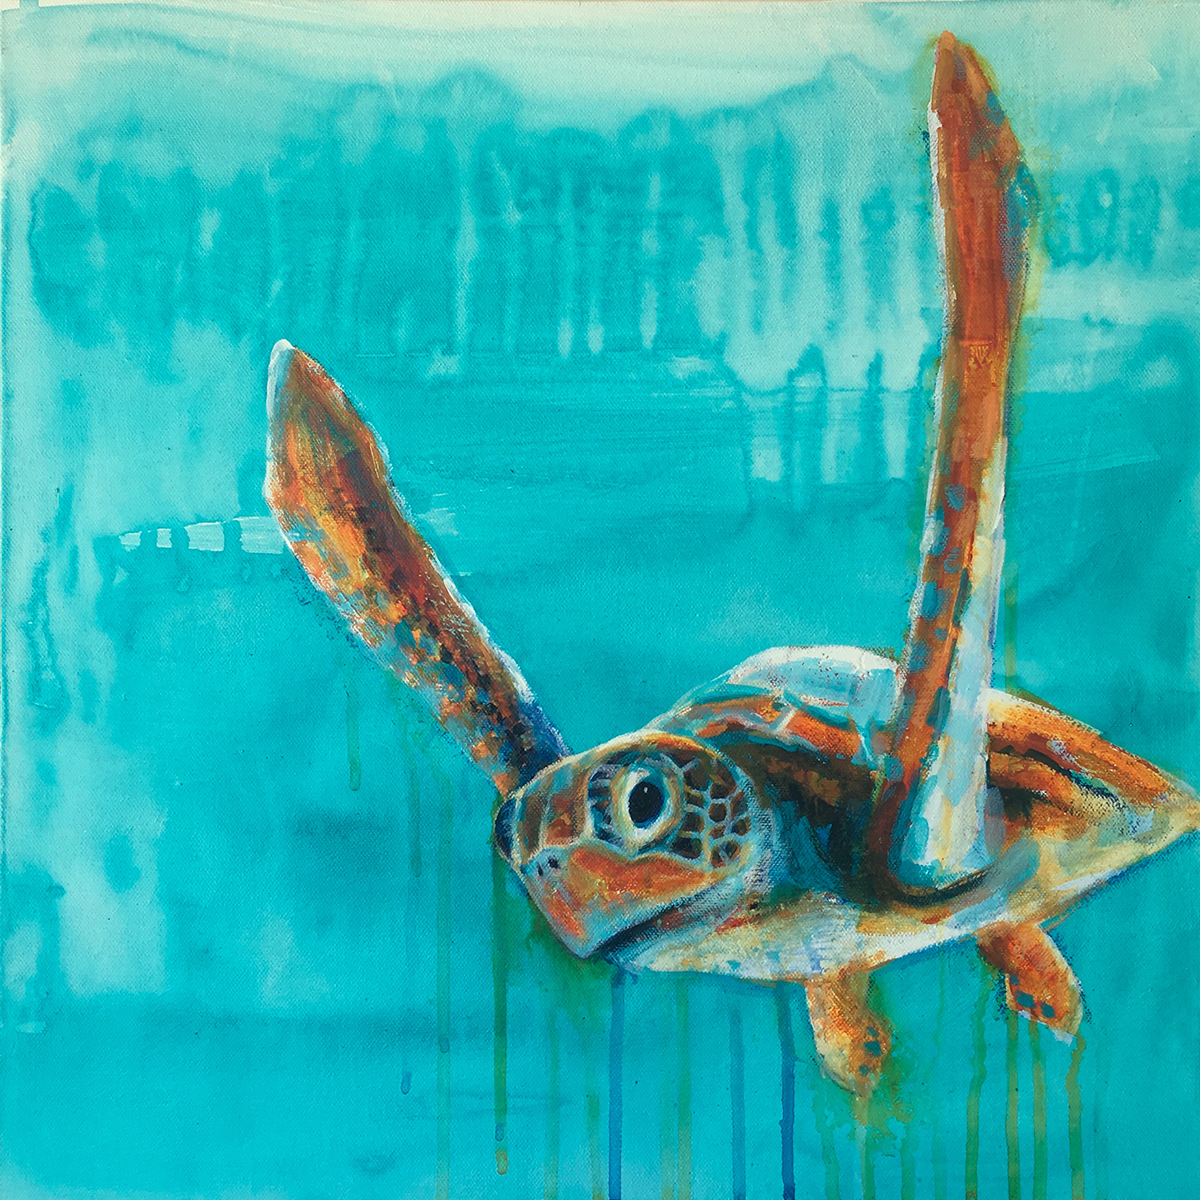 Sea turtle by Claudia Krauss